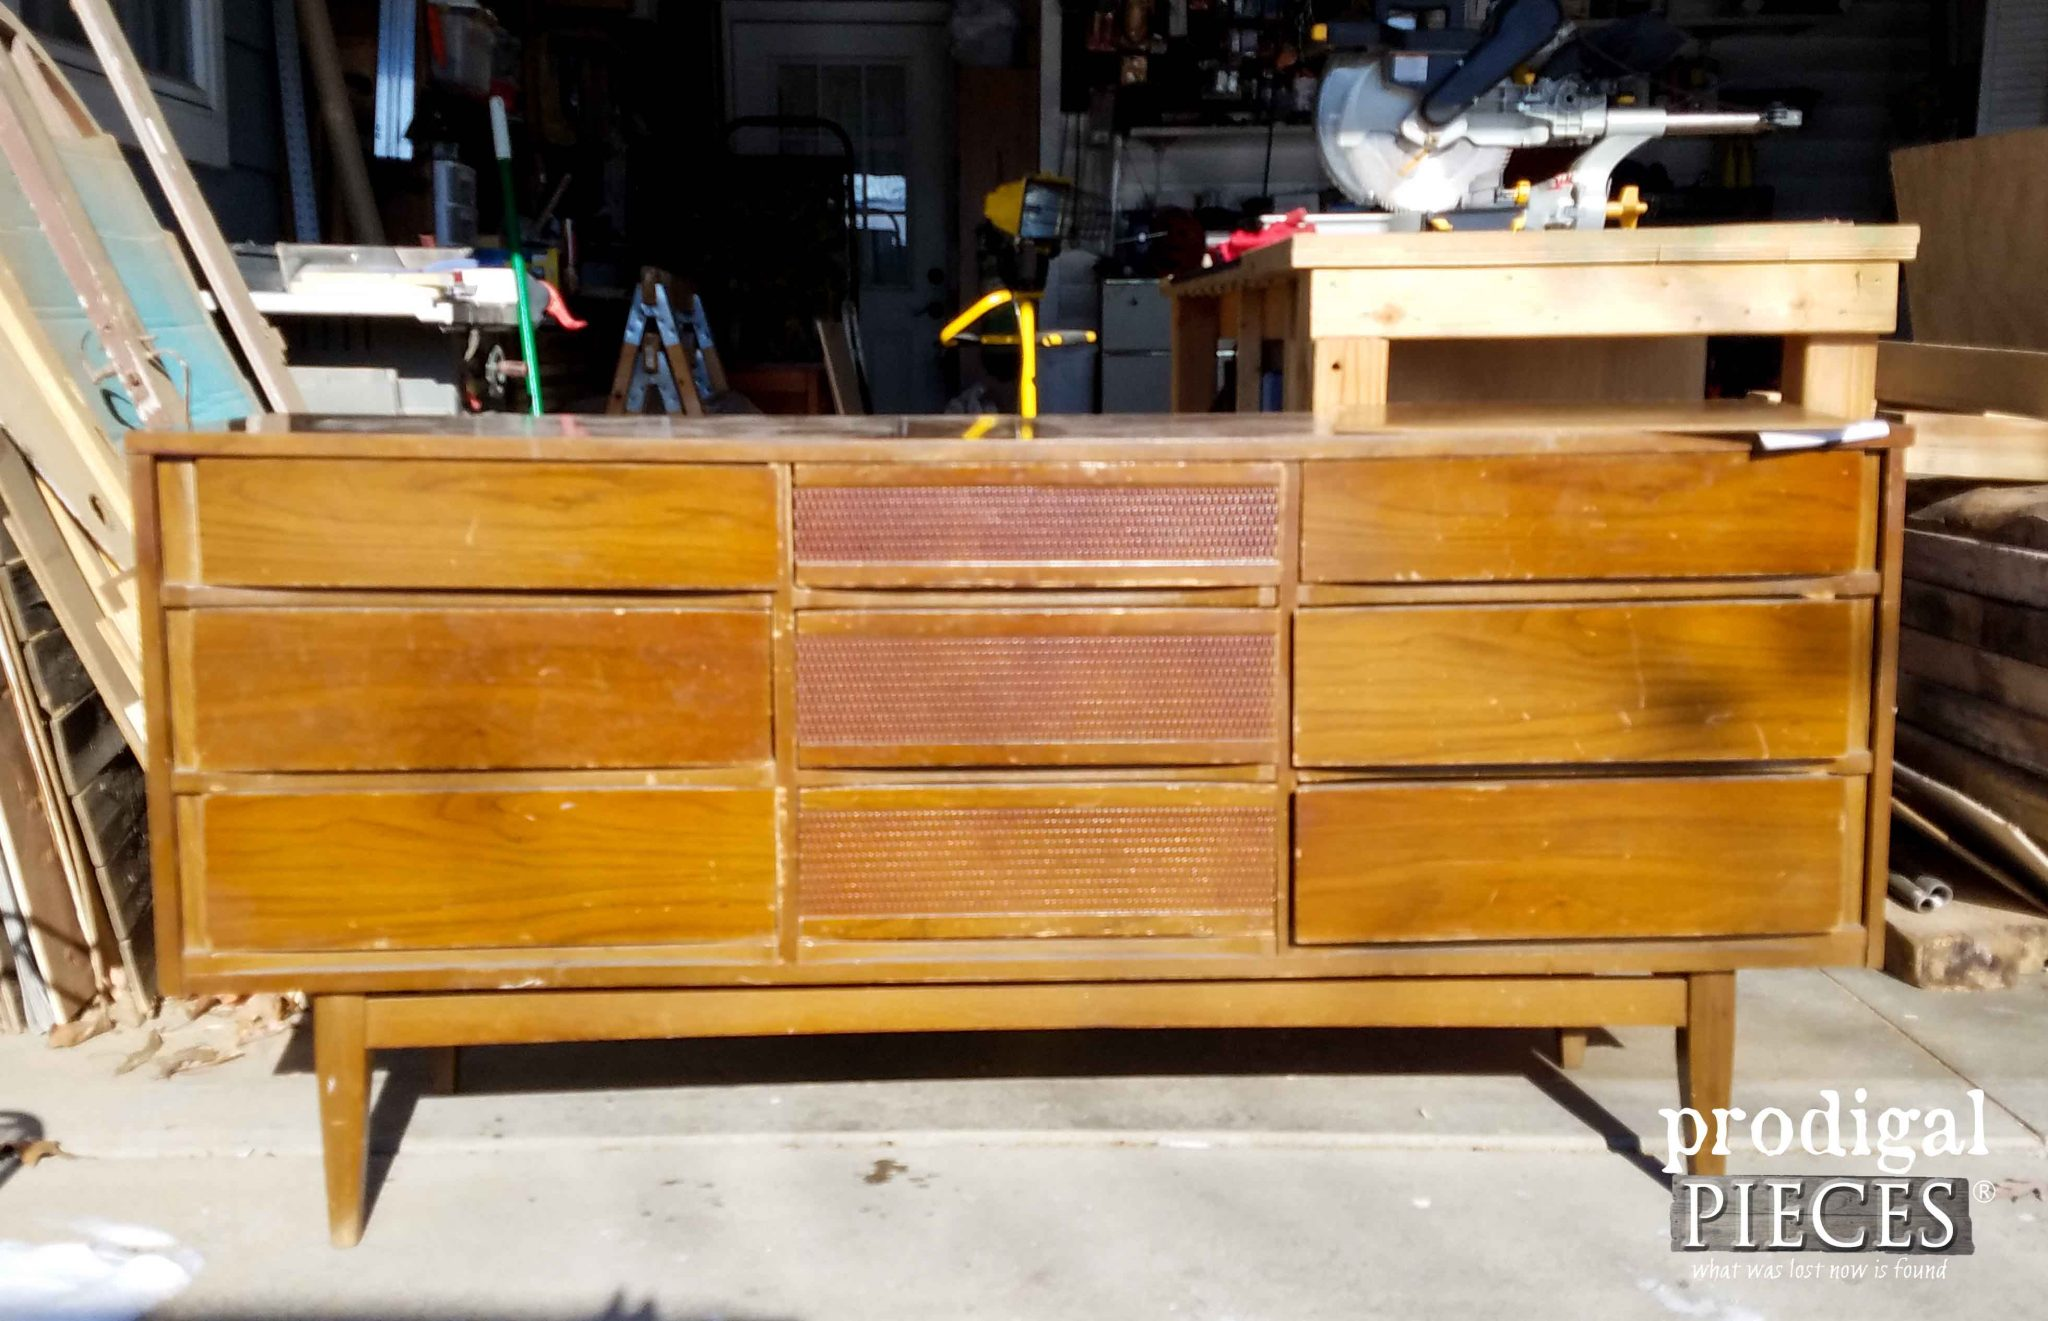 Mid Century Modern Dresser Found at Thrift Store by Prodigal Pieces | prodigalpieces.com